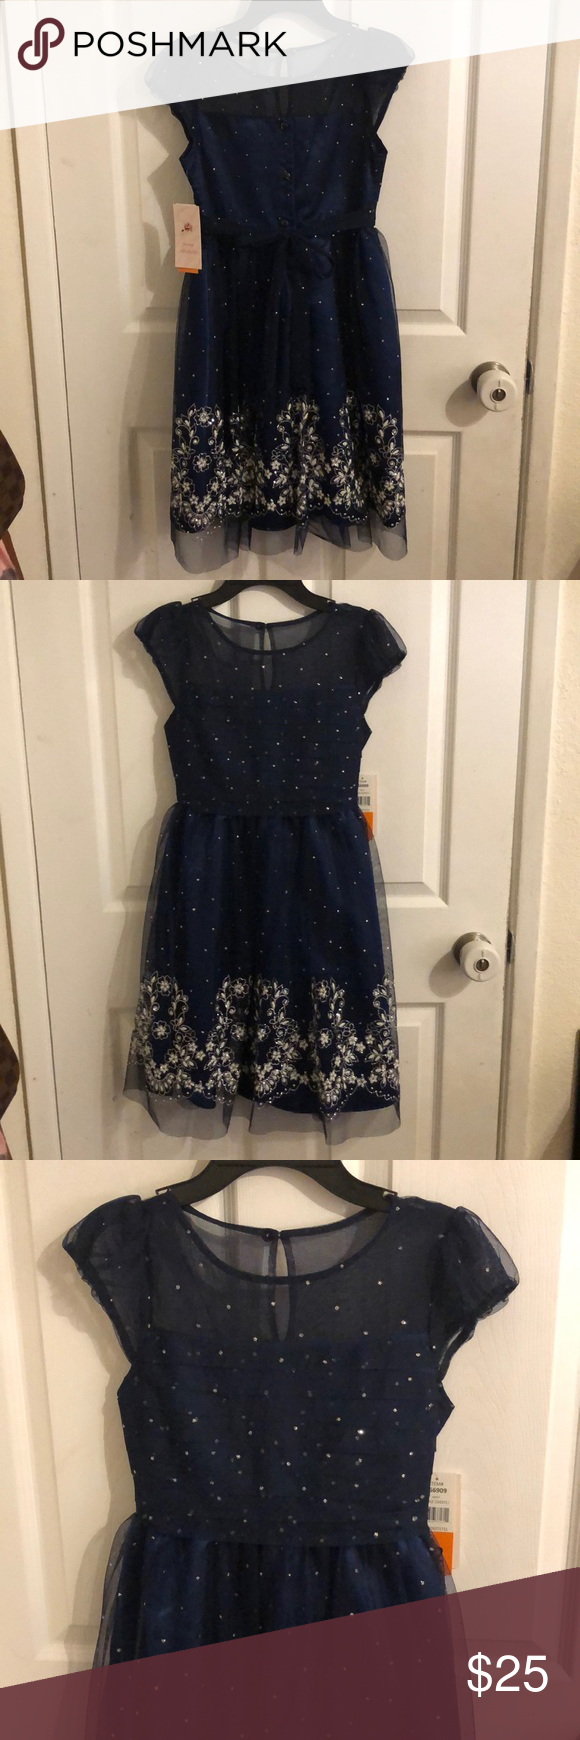 New With Tag Jona Michelle Girls Dress Size 12 Girls Dresses Size 12 Dresses Girls Dresses [ 1740 x 580 Pixel ]